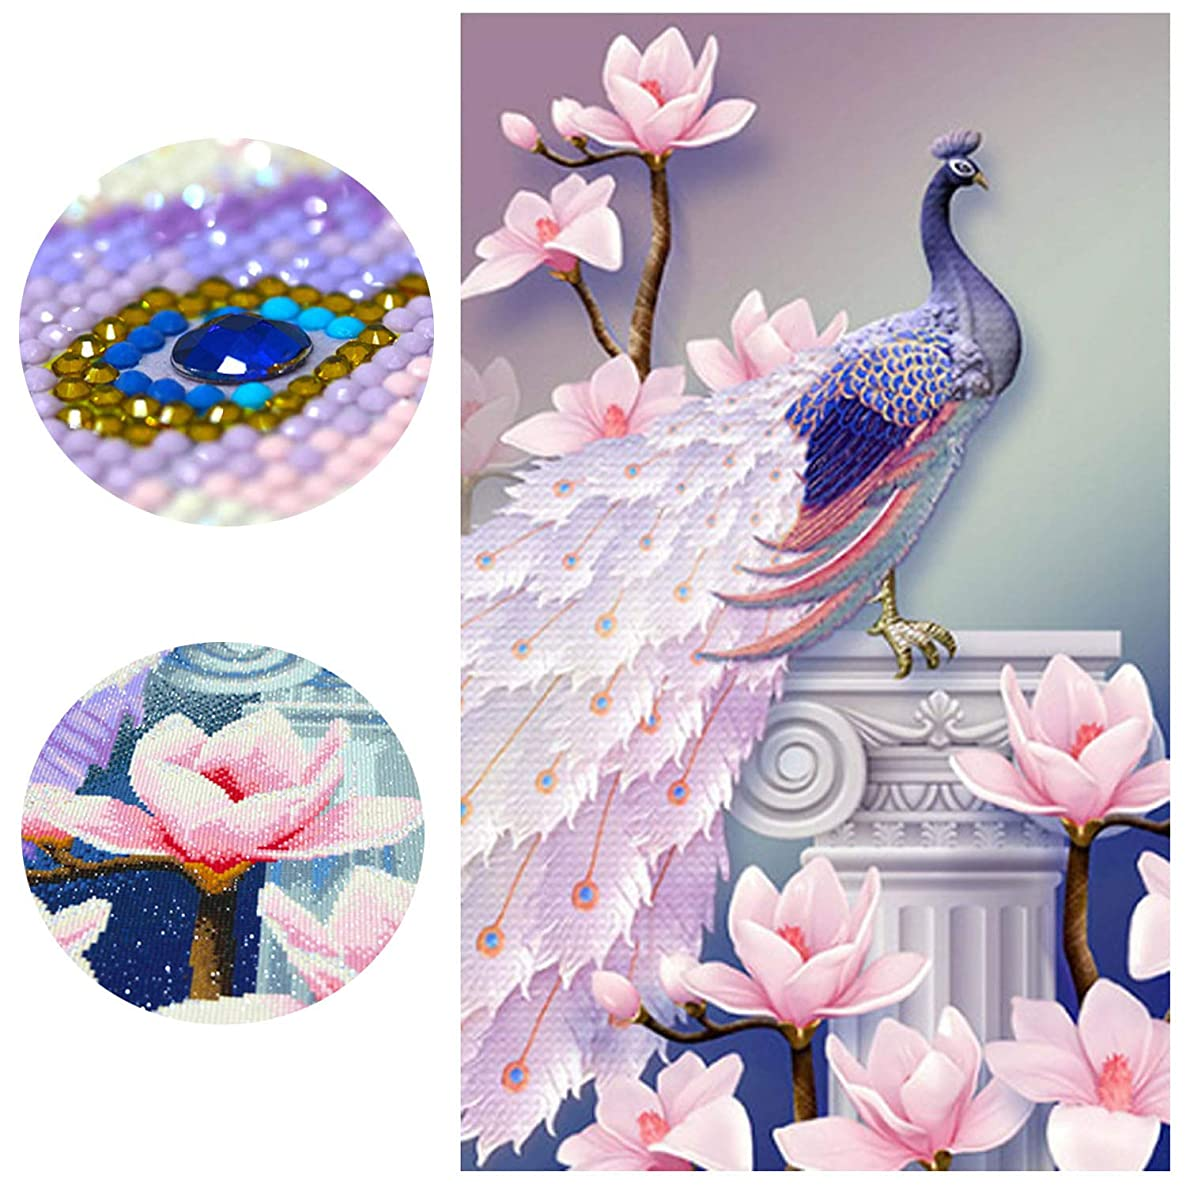 Diamond Painting Kits for Adults Full Drill 18X28'' 5D DIY Paint-by-Number Kits with Diamonds for Home Wall Decors - Peacock & Magnolia 45X70 cm